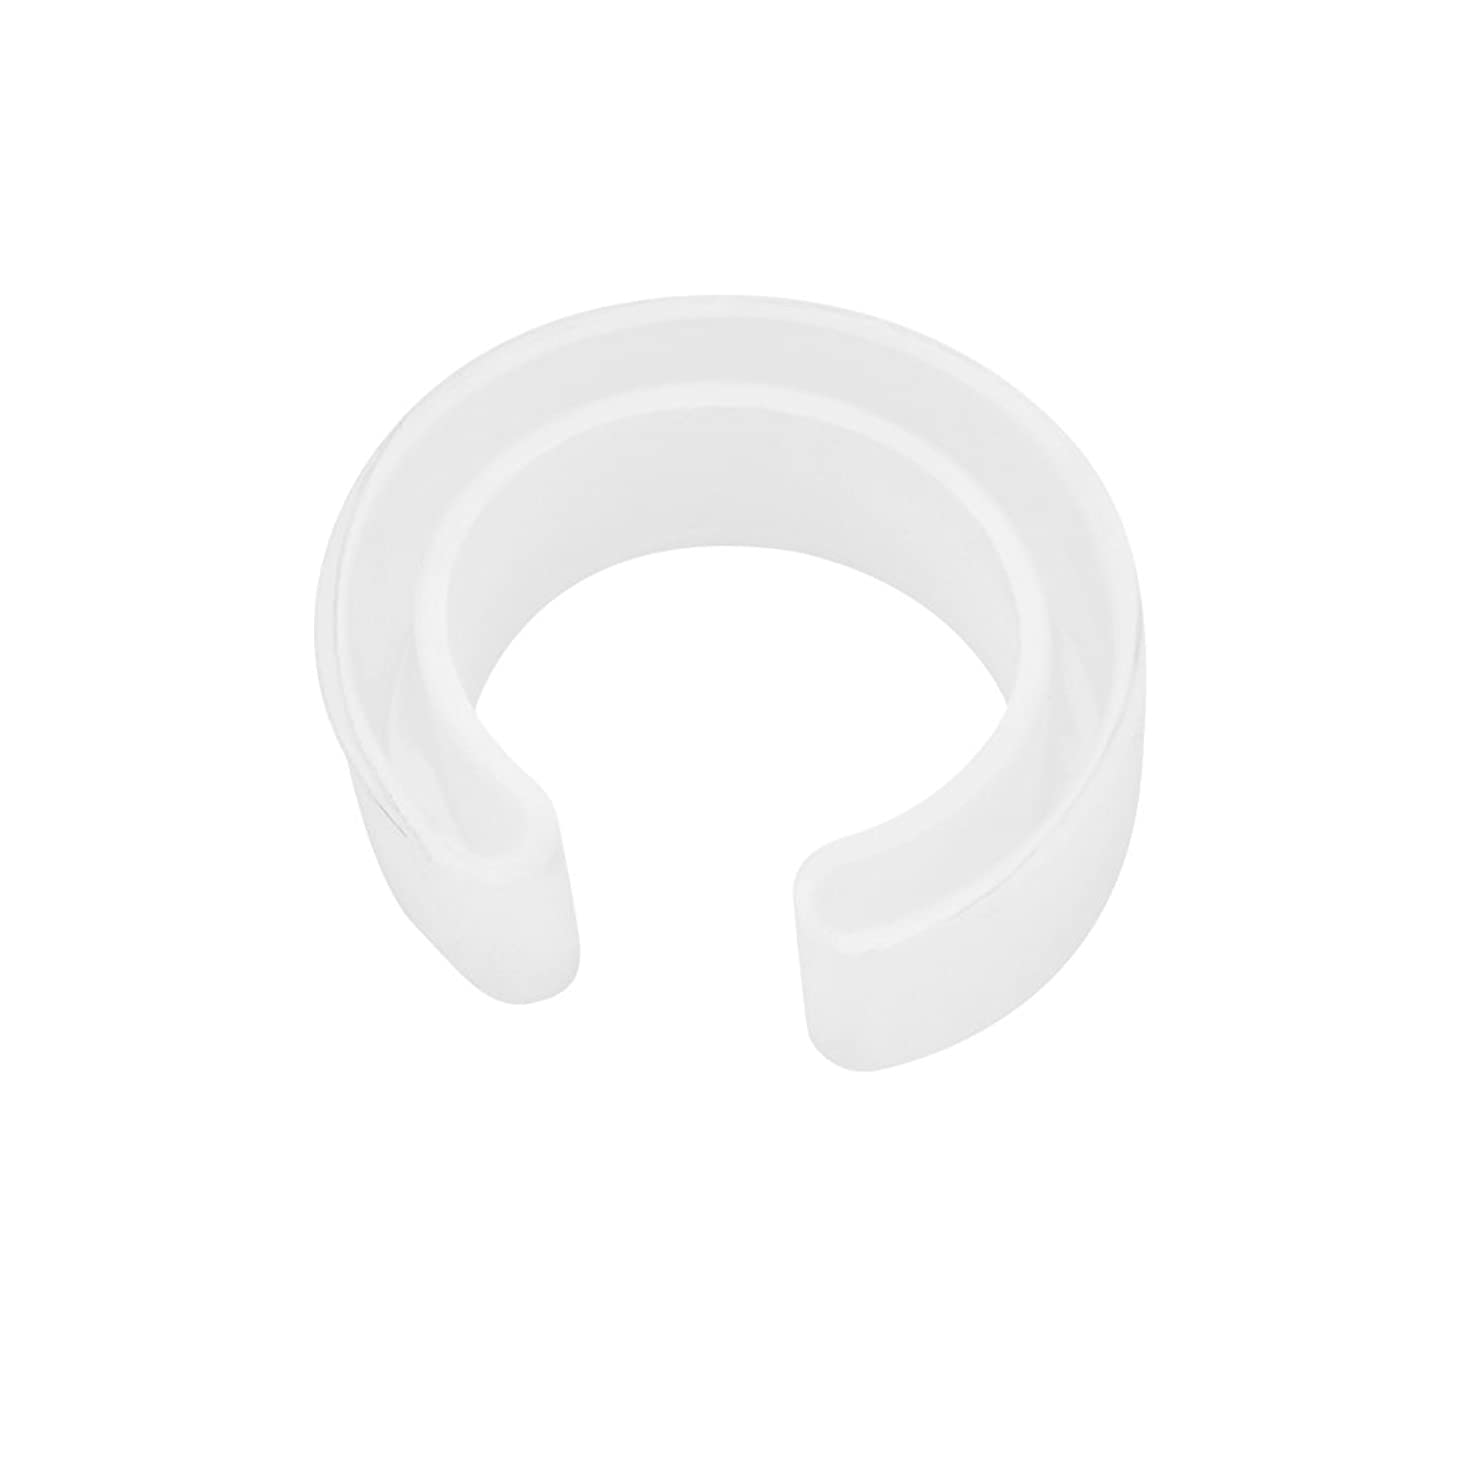 DIY Bracelet Mold, Silicone Casting Mould Resin Bangle Open Cuff Bracelet Jewelry Mold Making